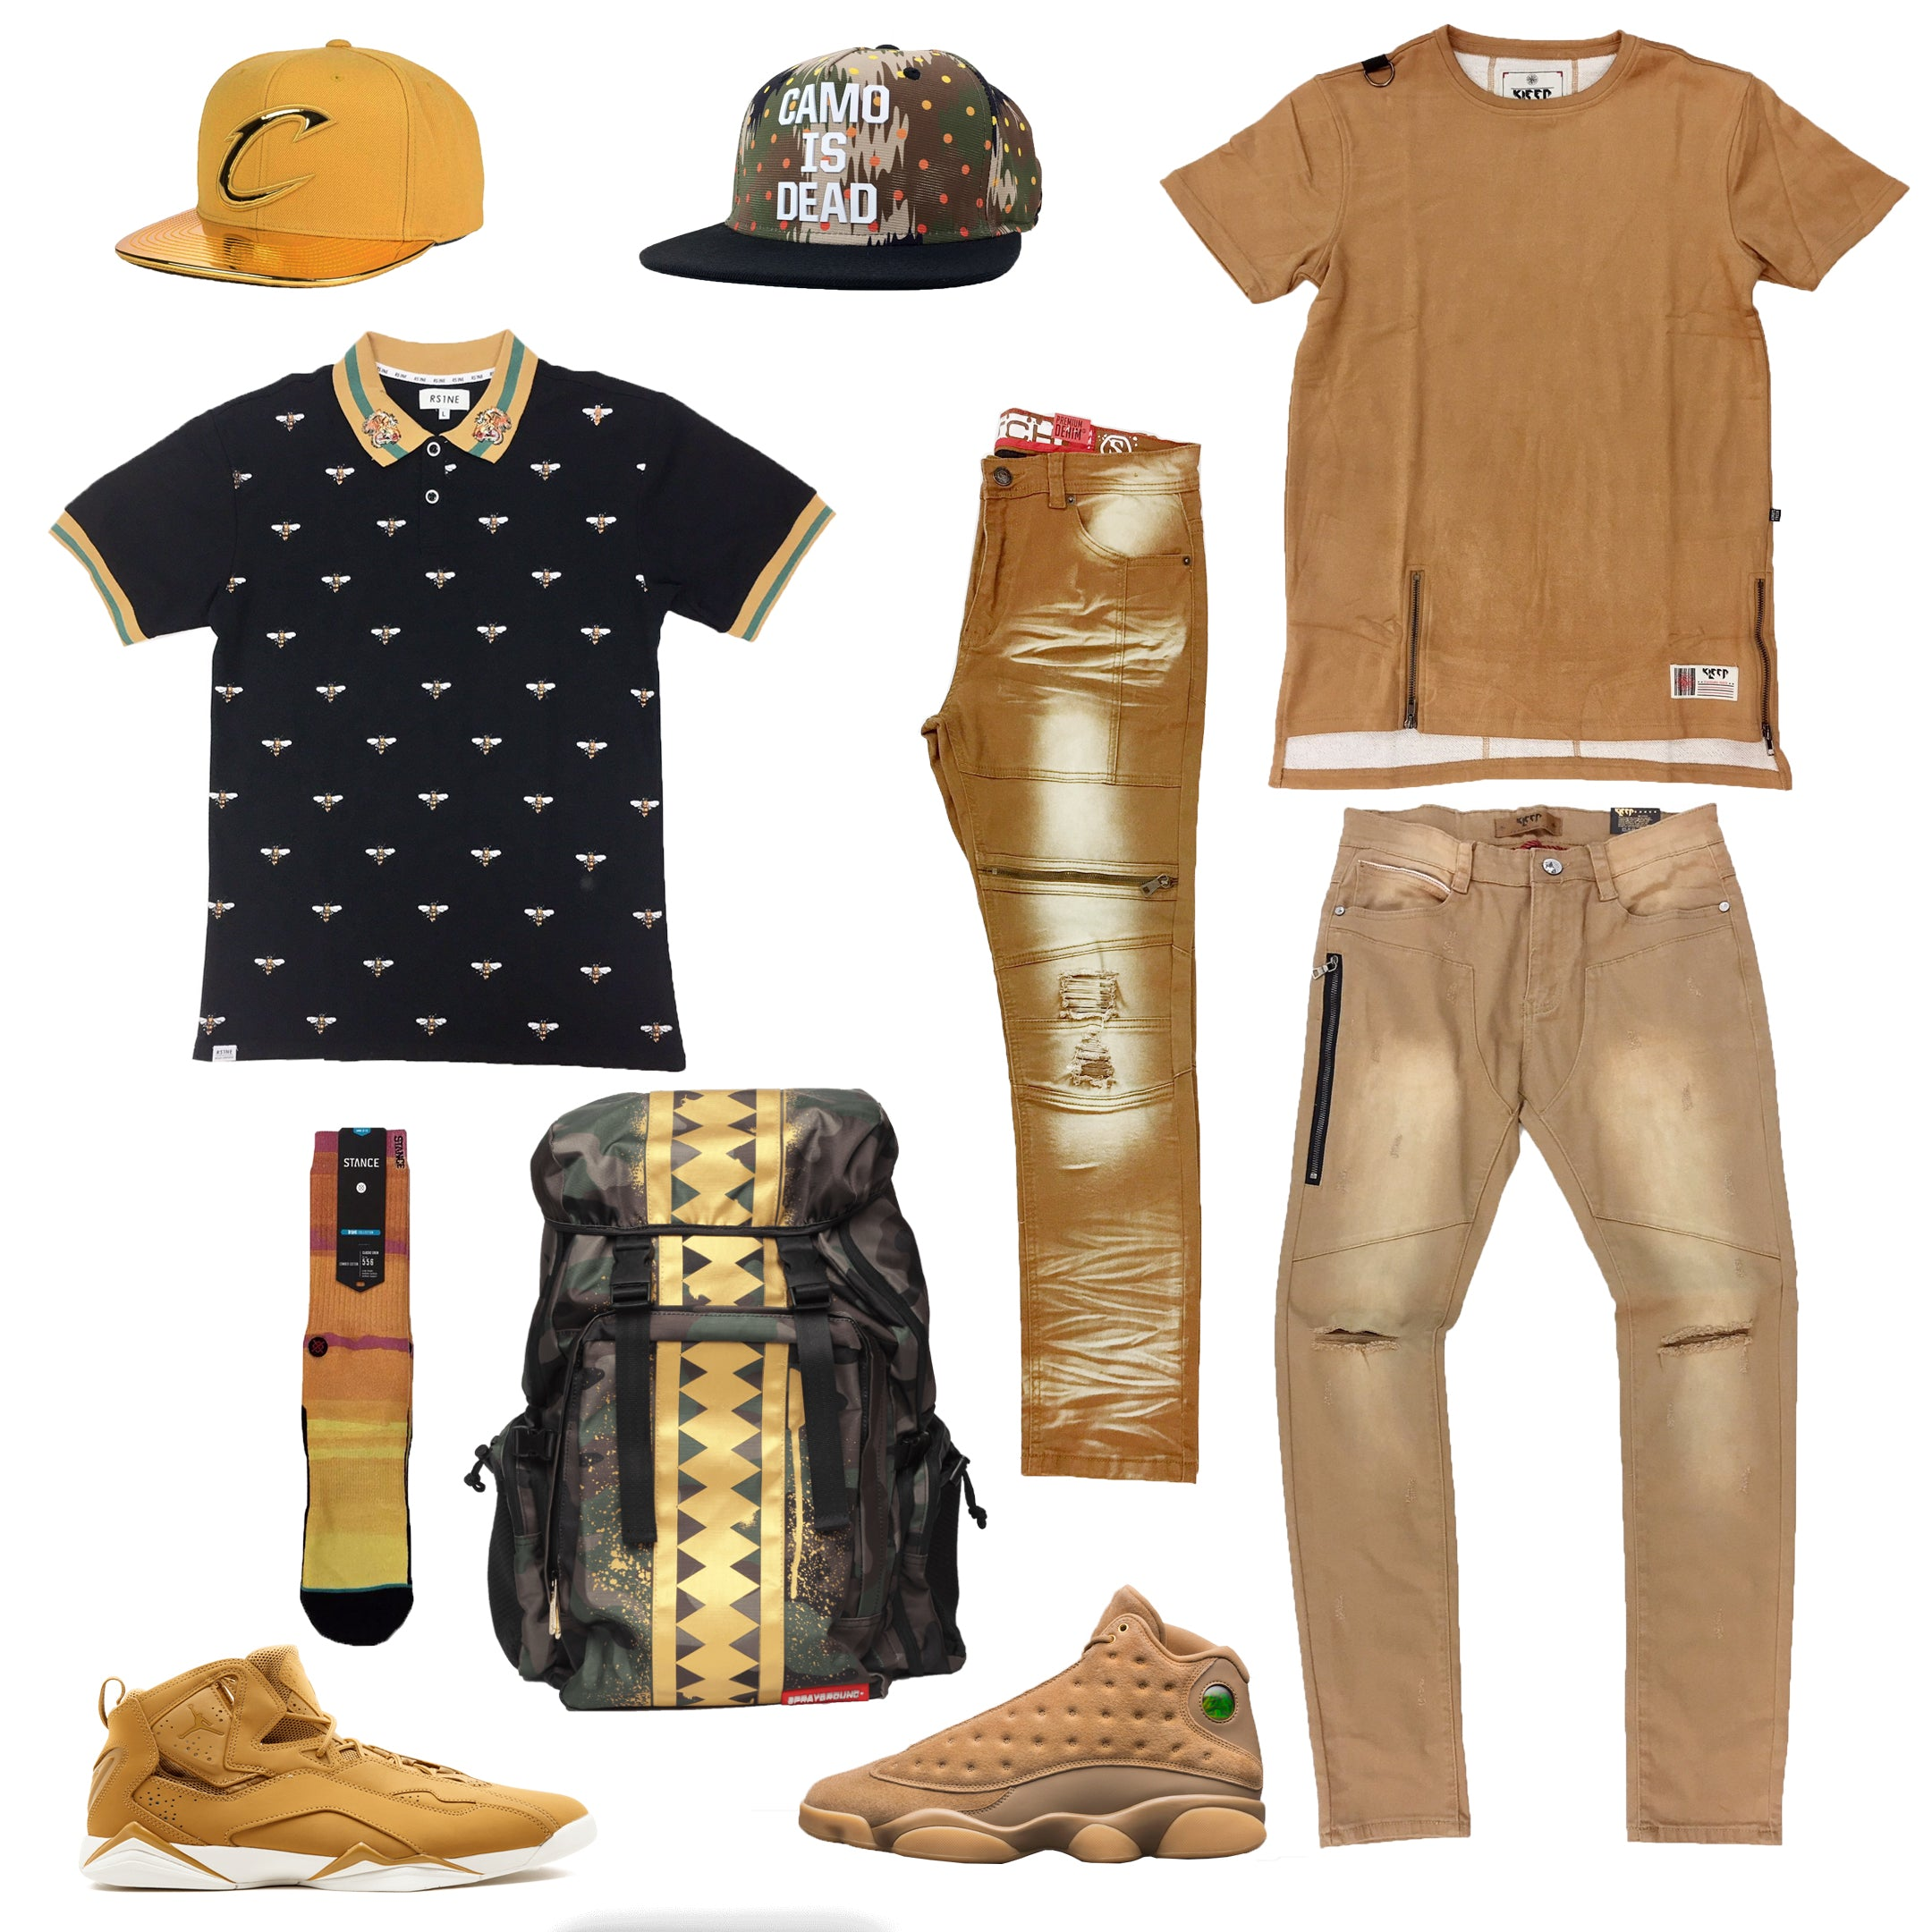 new arrival 8697c 15e85 Air Jordan 13 Retro Wheat   Jordan True Flight Golden Harvest Outfit